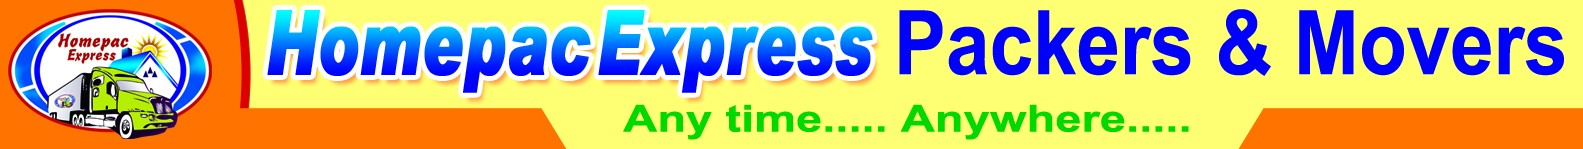 Homepac Express Packers & Movers